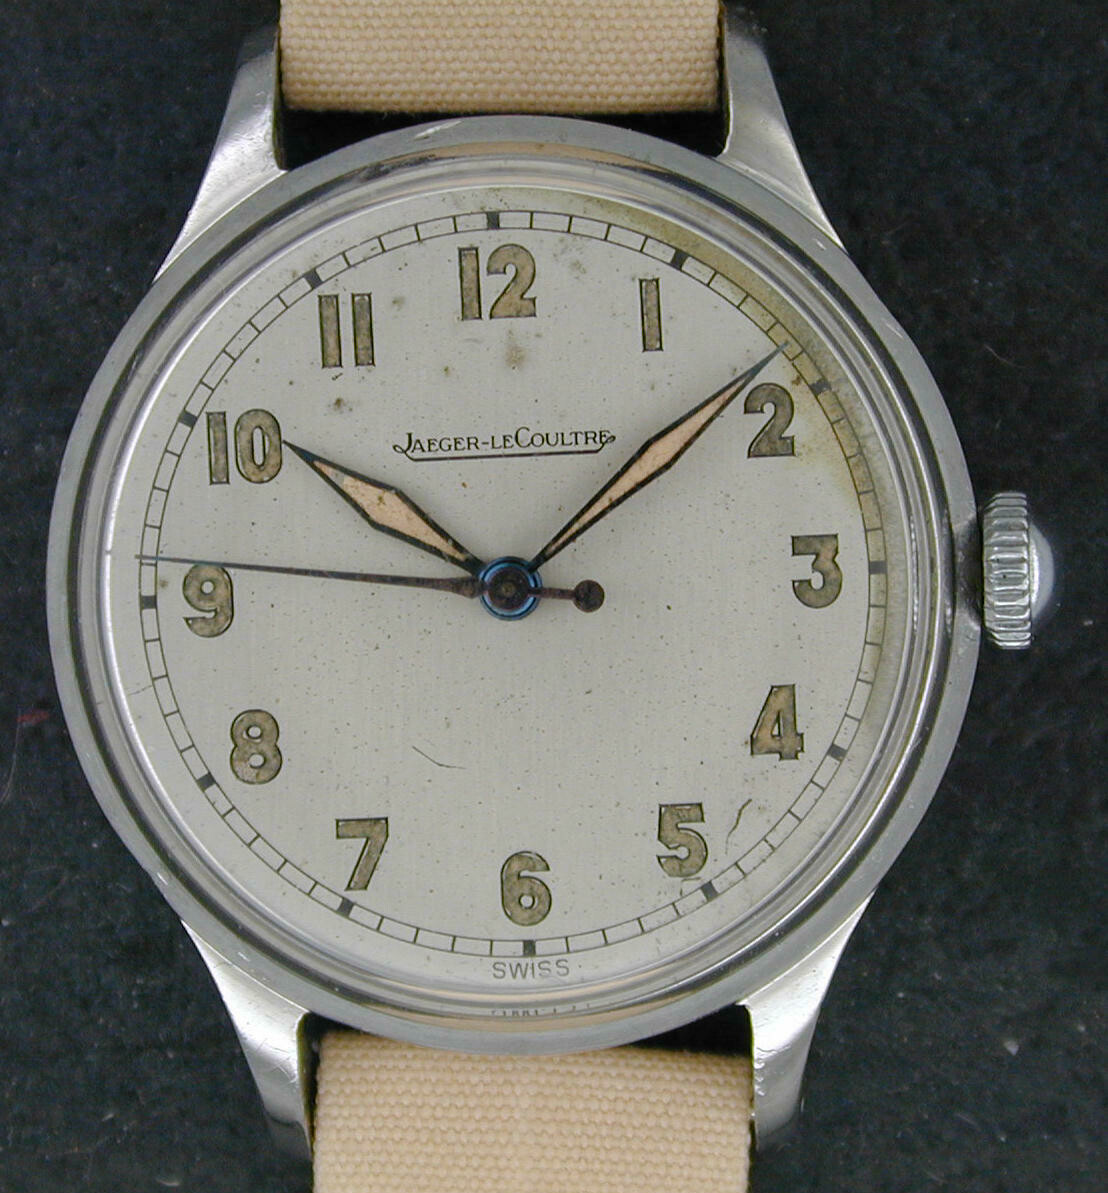 Jaeger LeCoultre Military style #210102